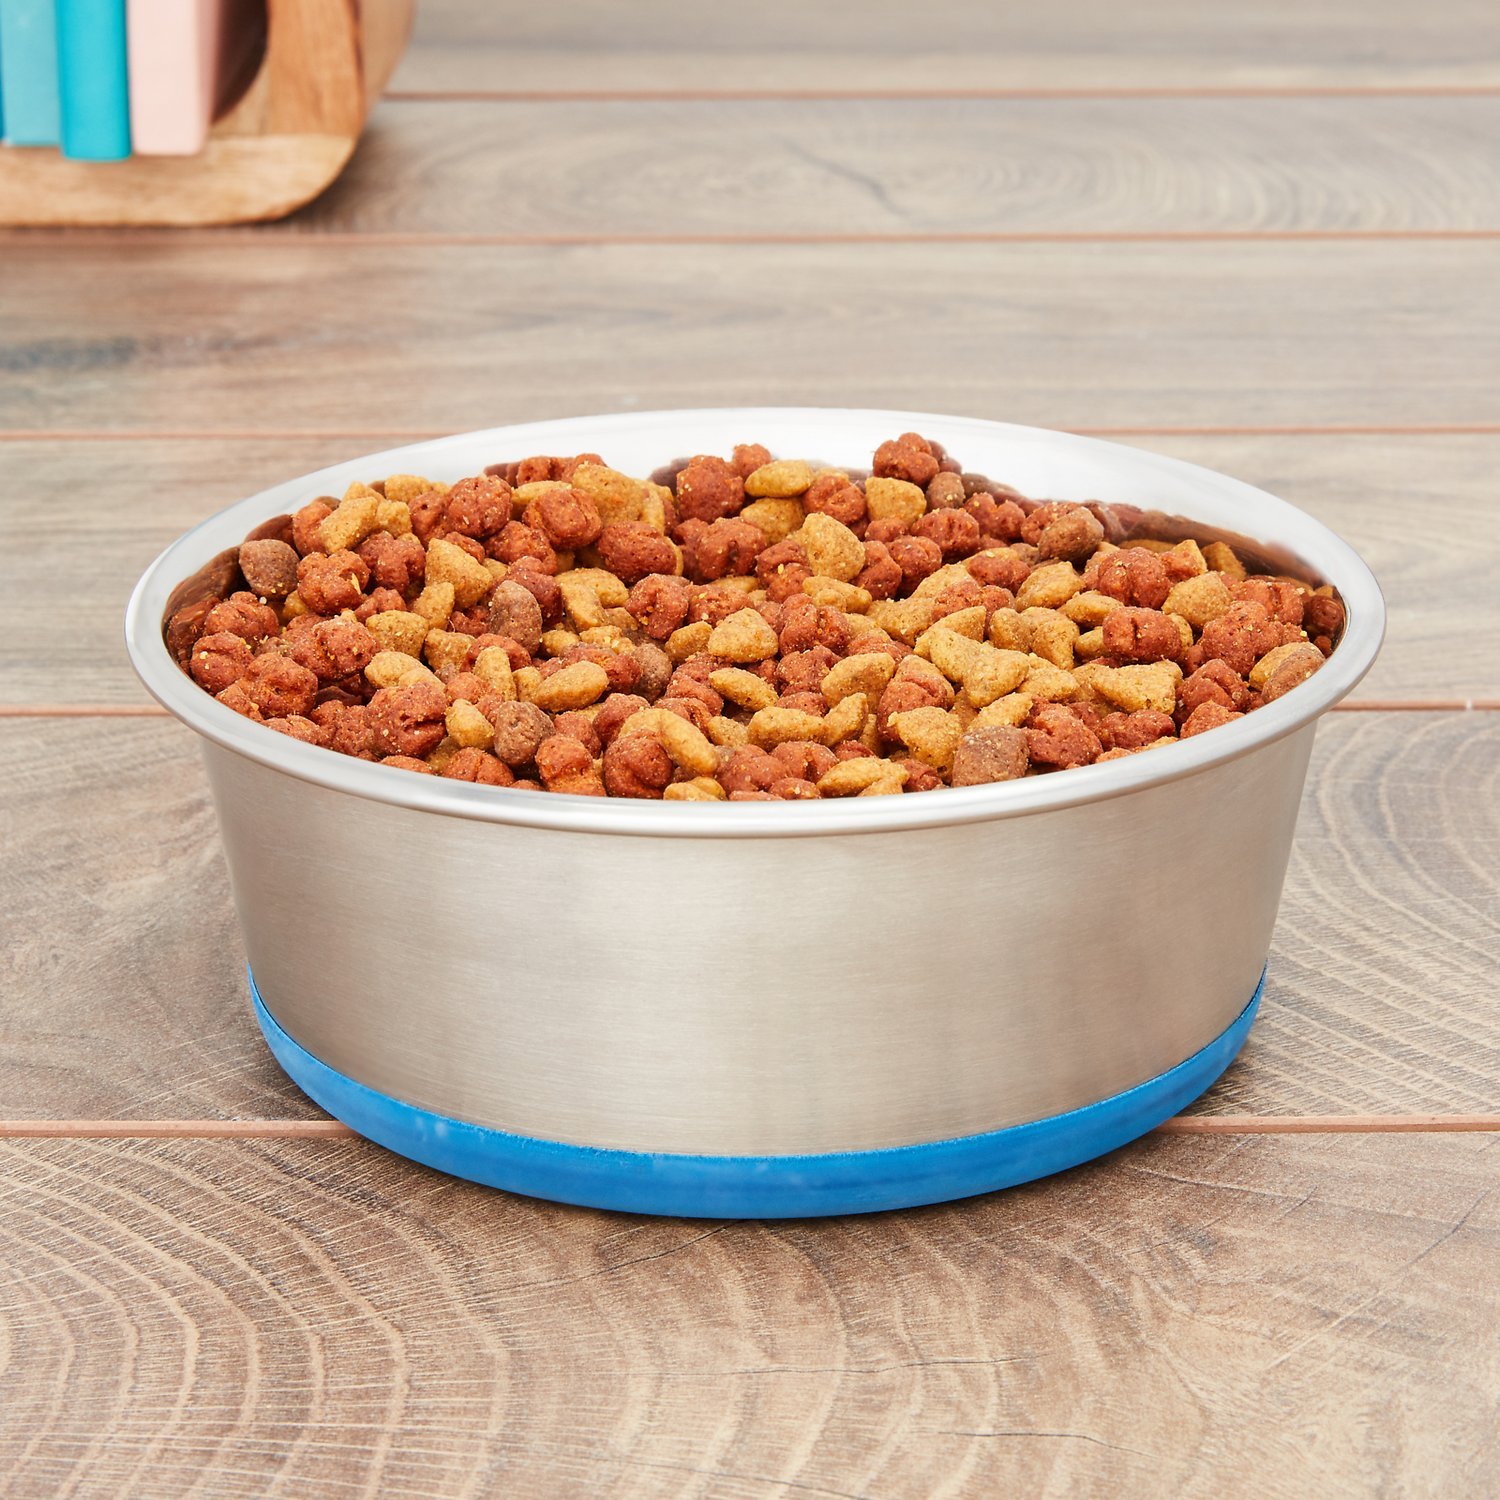 Thanks for pet food tray rubber bottom